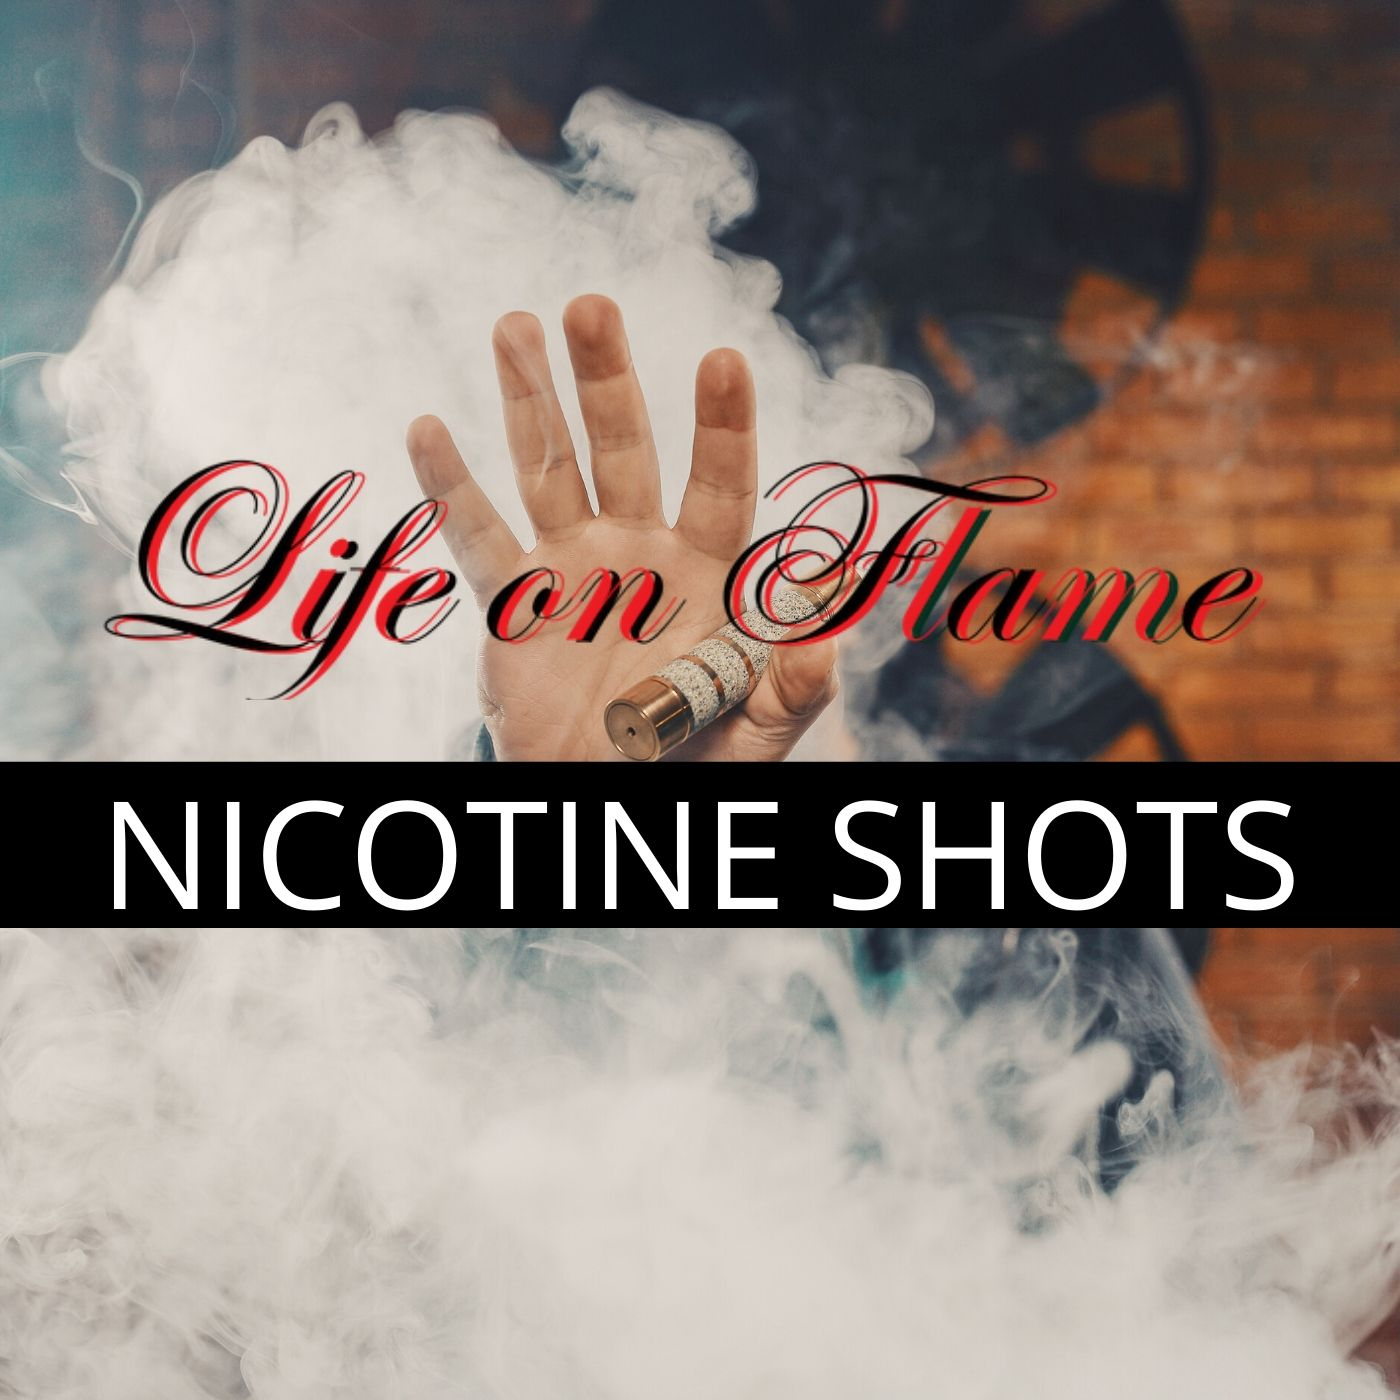 Ecig Nicotine Shots - Life on Flame - pleasure in life If you can't really say goodbye to Nicotine, no problem! Ecig nicotine shots within your control.